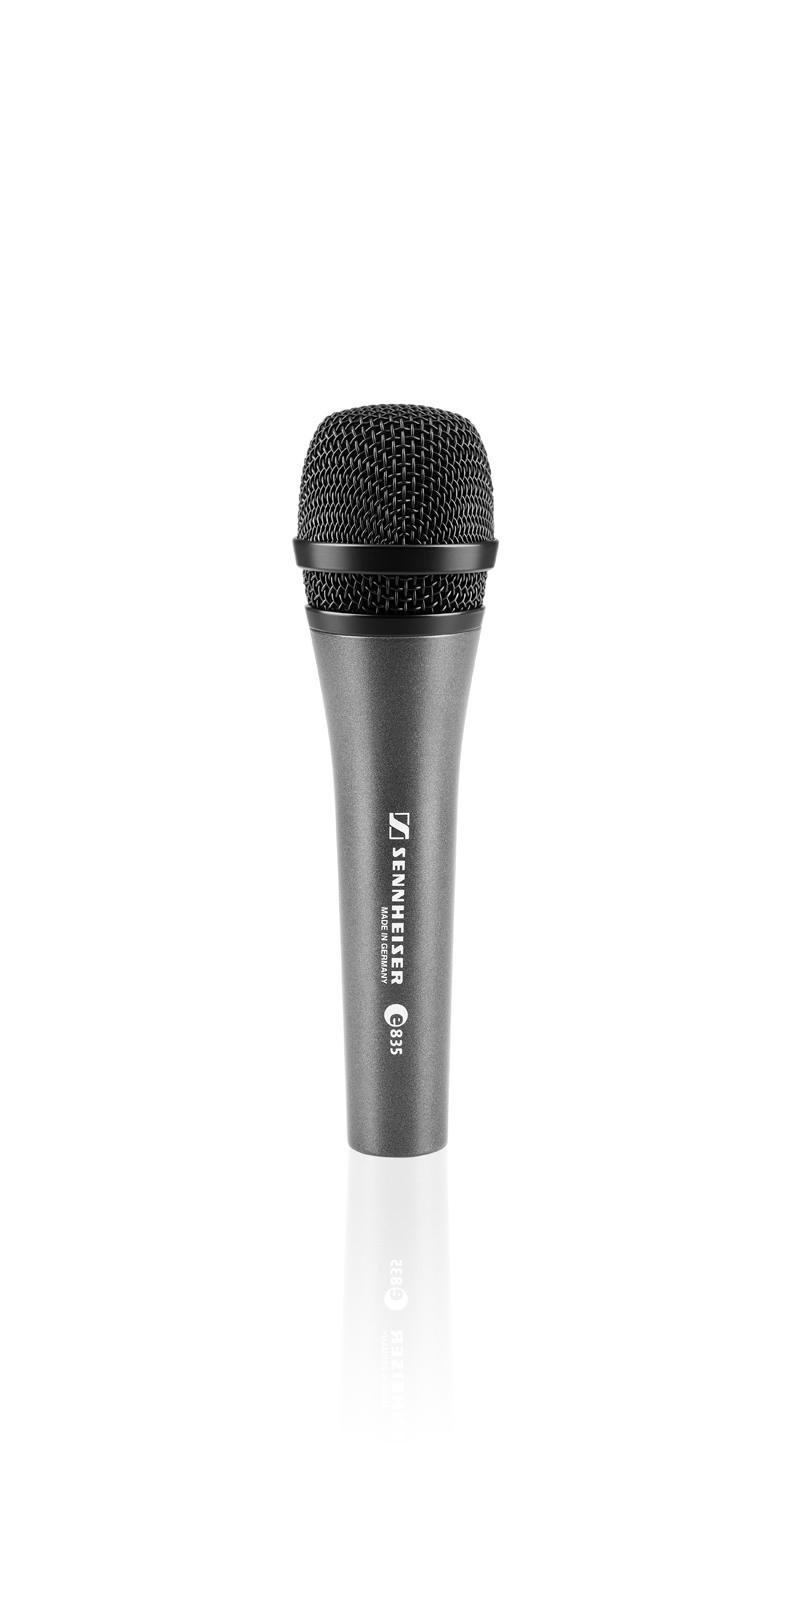 sennheiser e835 evolution cardioid dynamic vocal microphone agiprodj. Black Bedroom Furniture Sets. Home Design Ideas